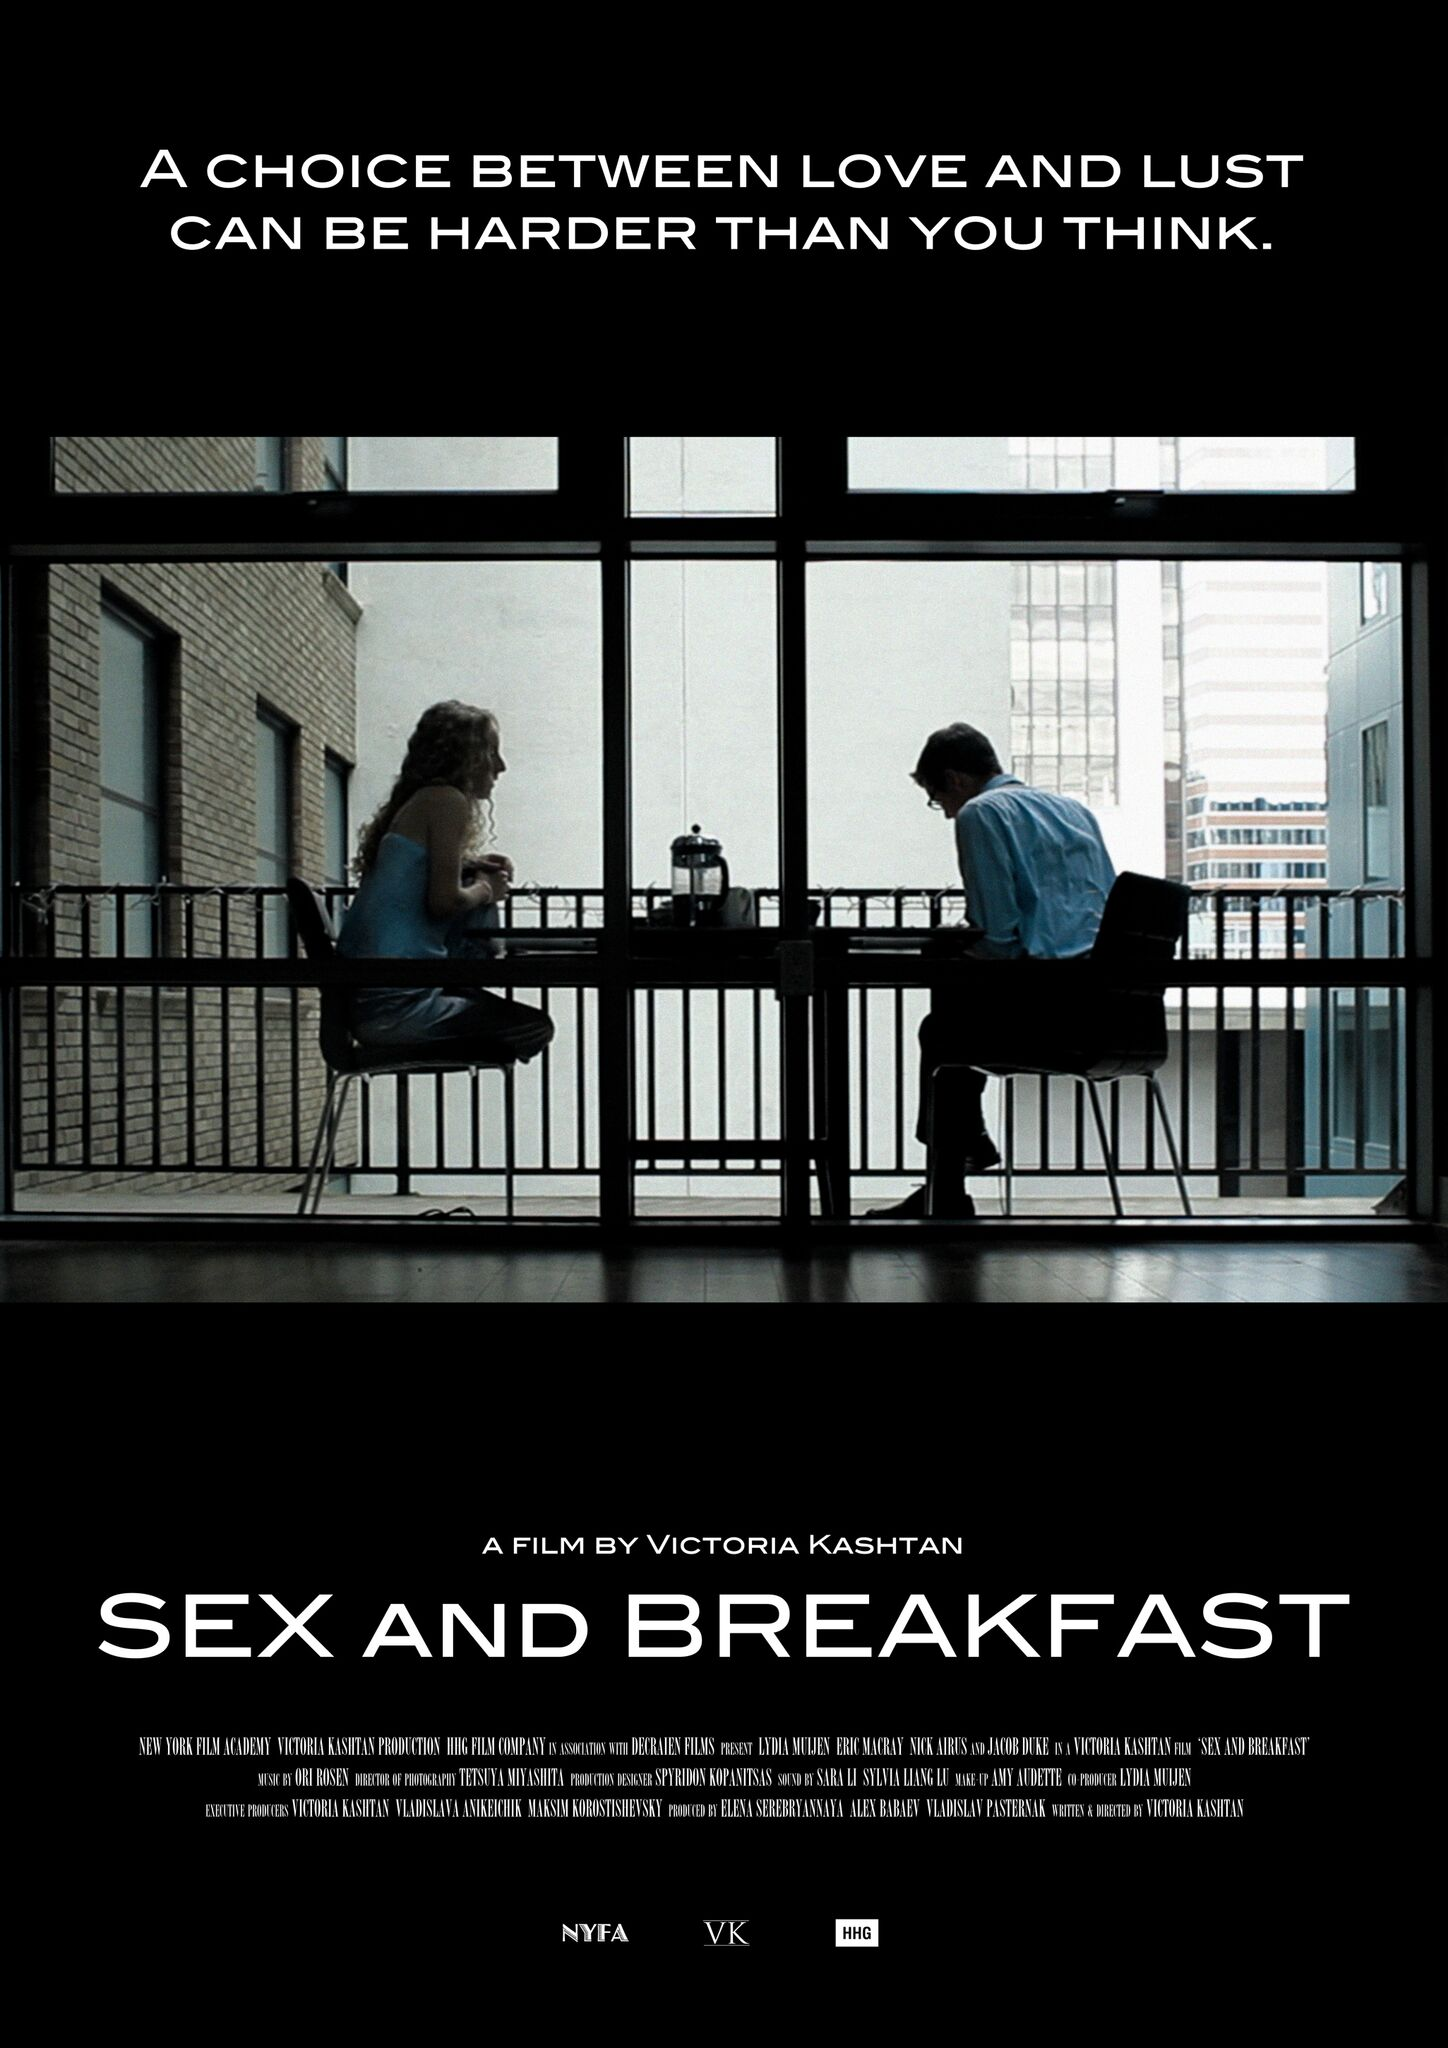 For that Sex and breakfeast accept